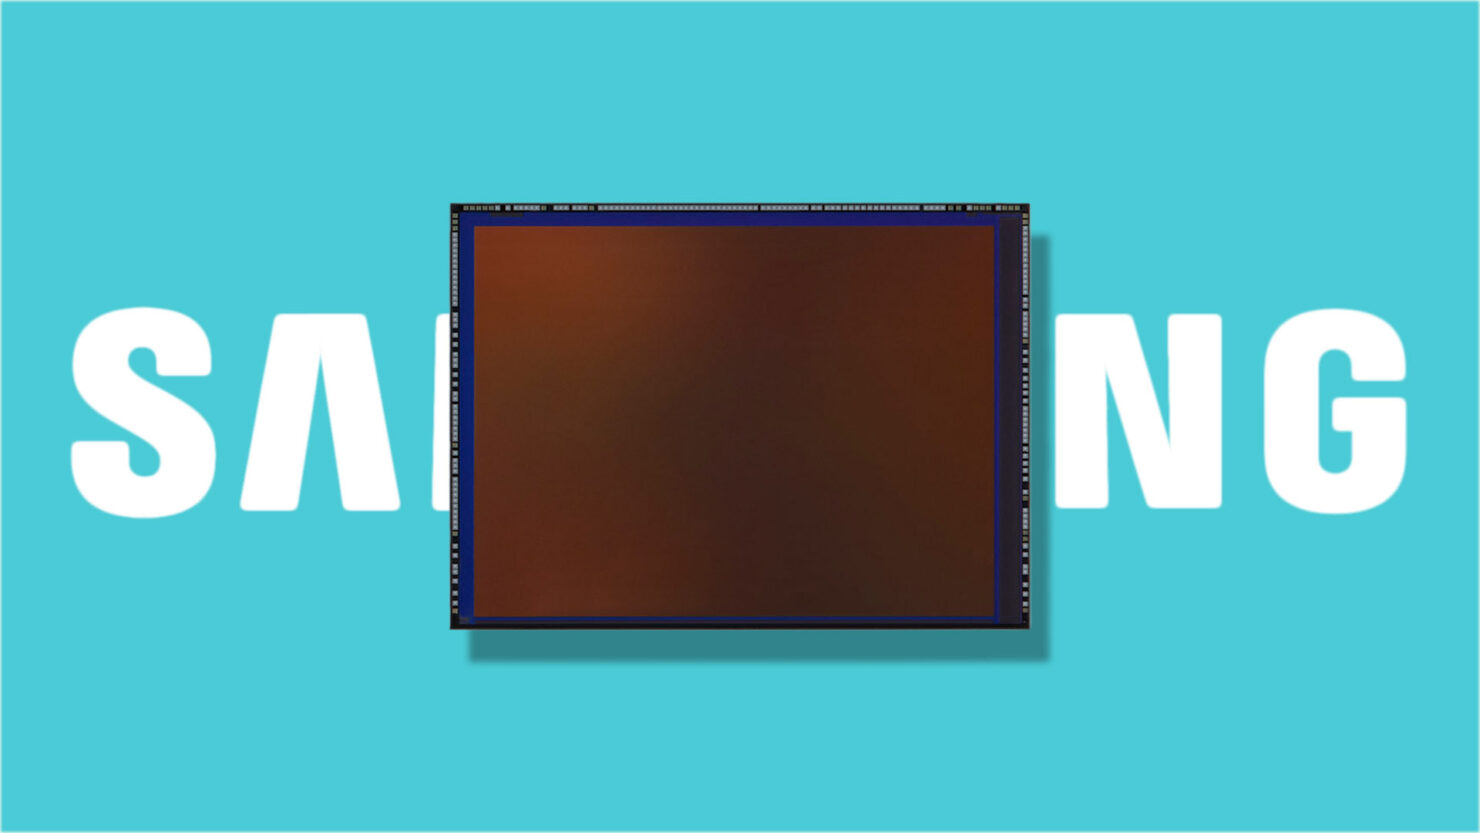 Samsung Reportedly Working on a 600MP Sensor, but Launch Timeline Not Confirmed Right Now